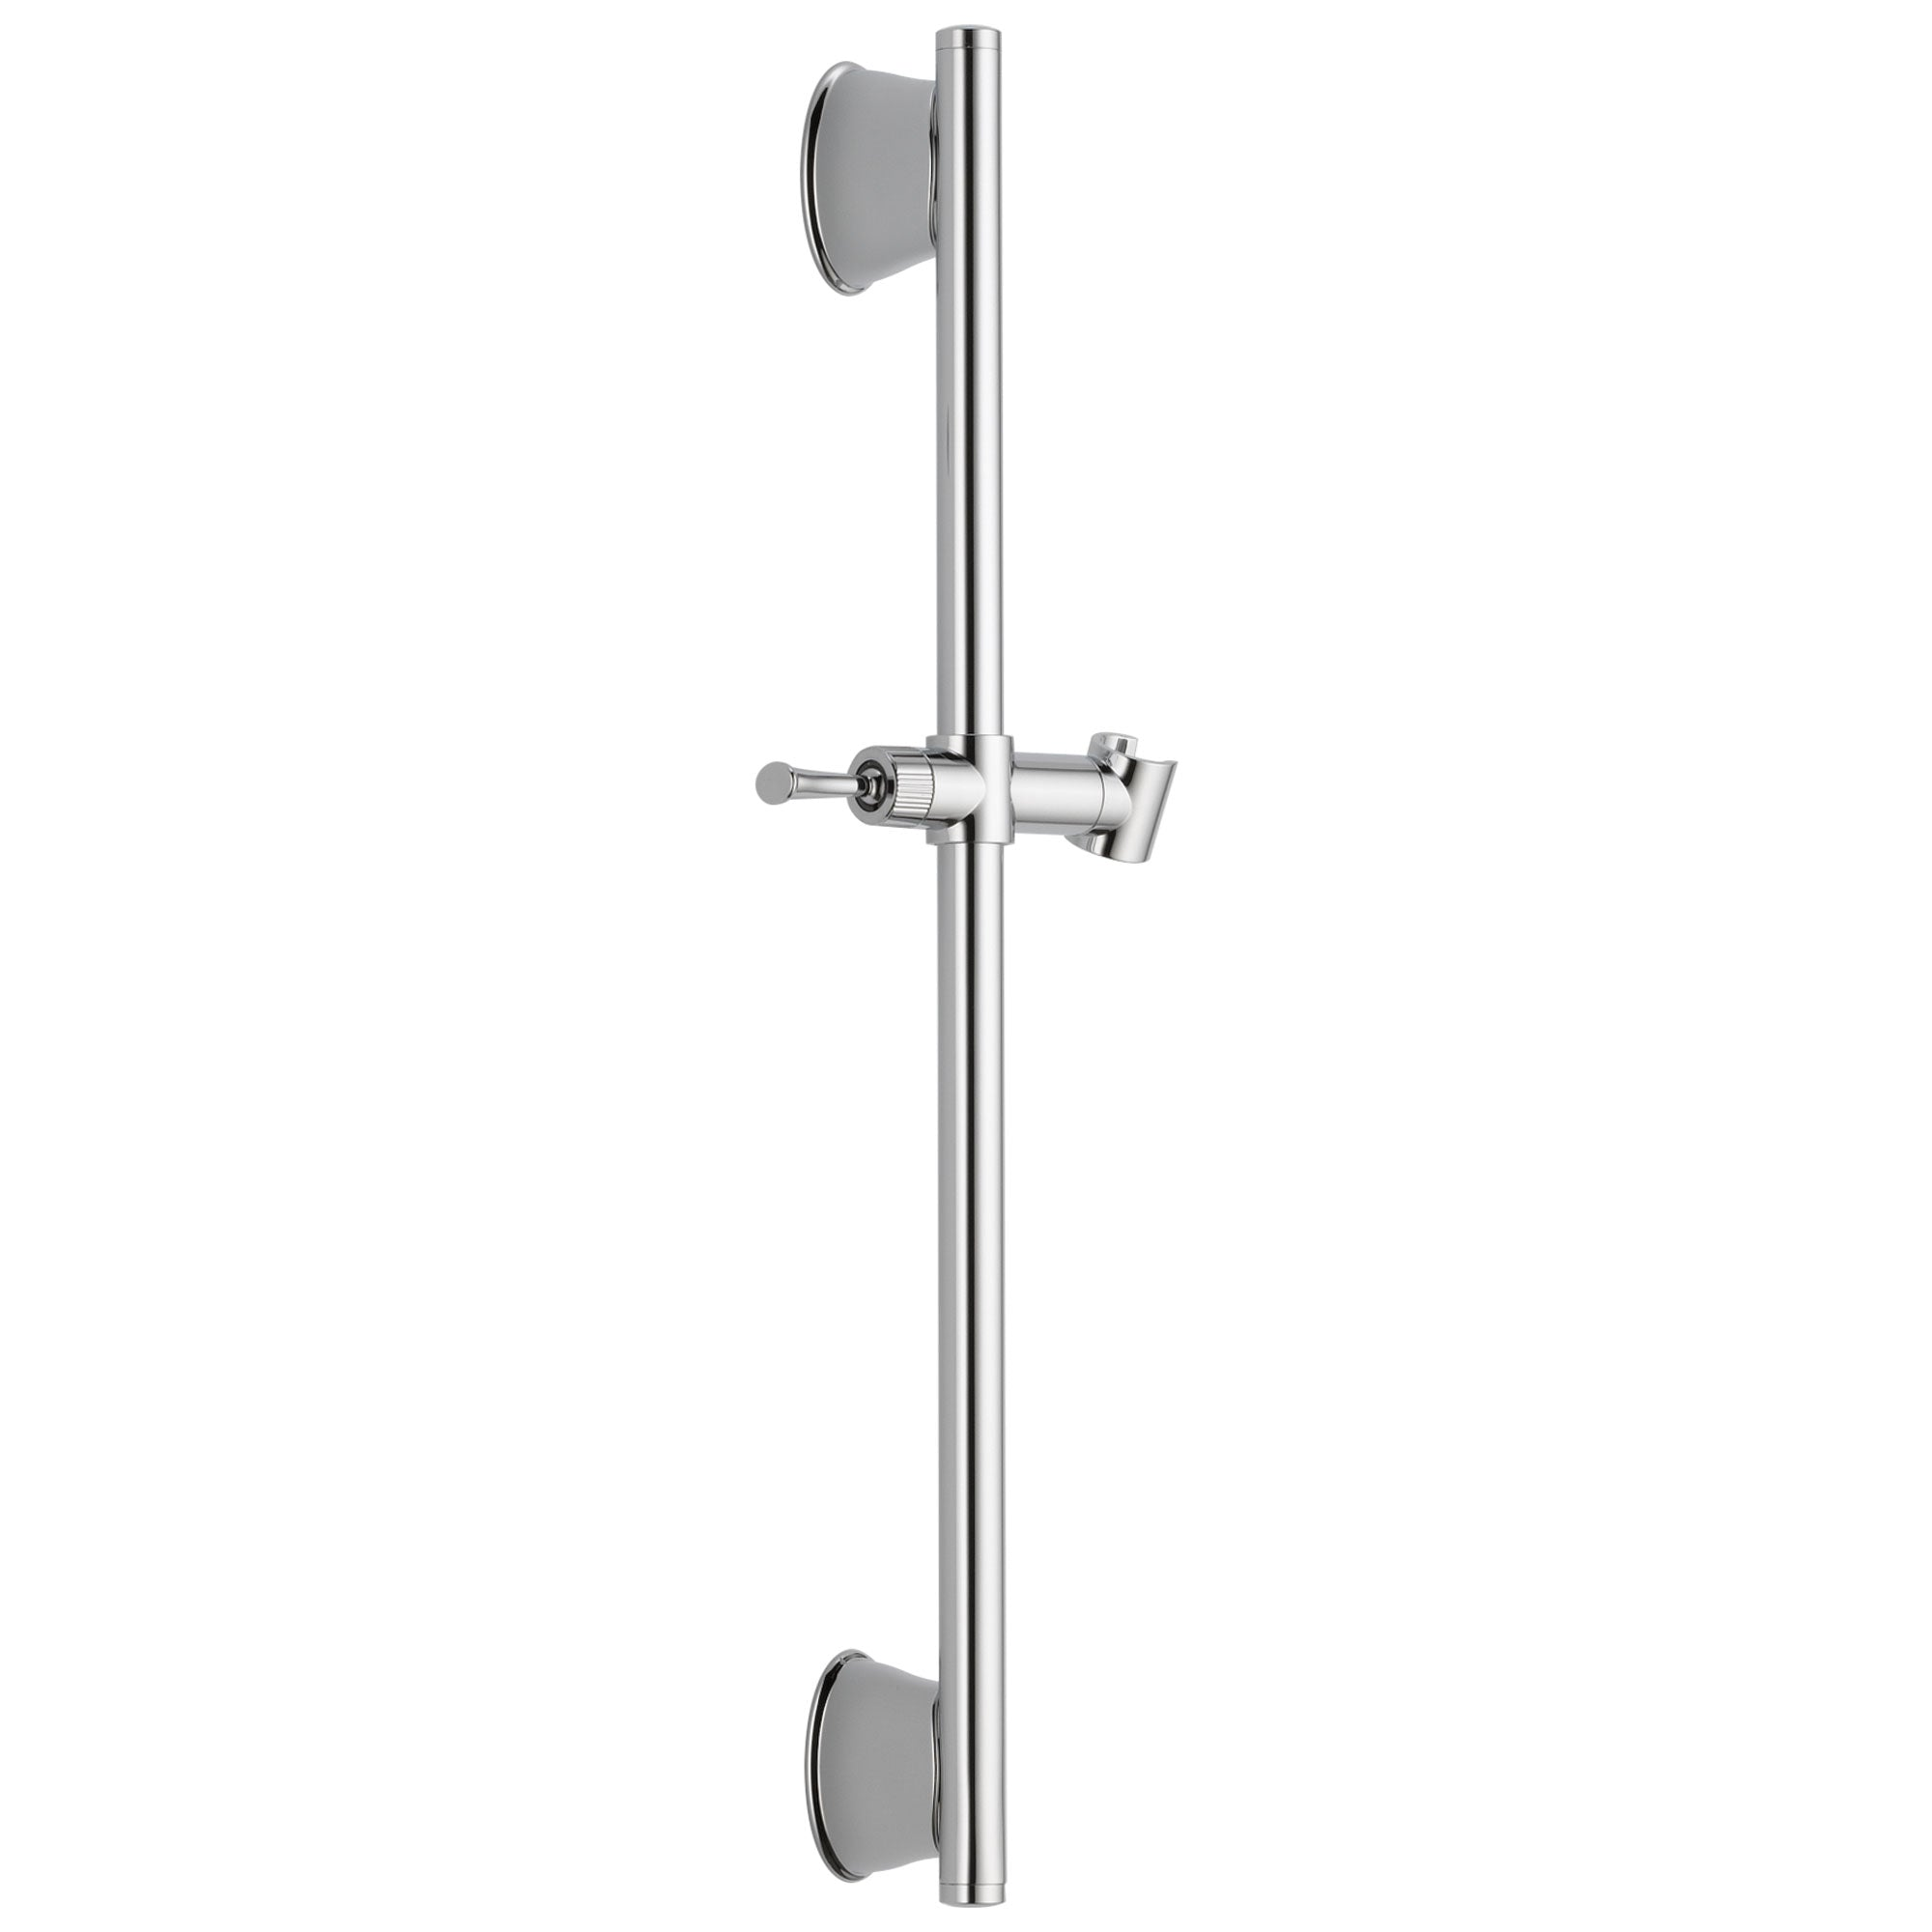 "Delta Universal Showering Components Collection Chrome Finish 24"" Adjustable Wall Mount Hand Shower Slide Bar D55044PK"